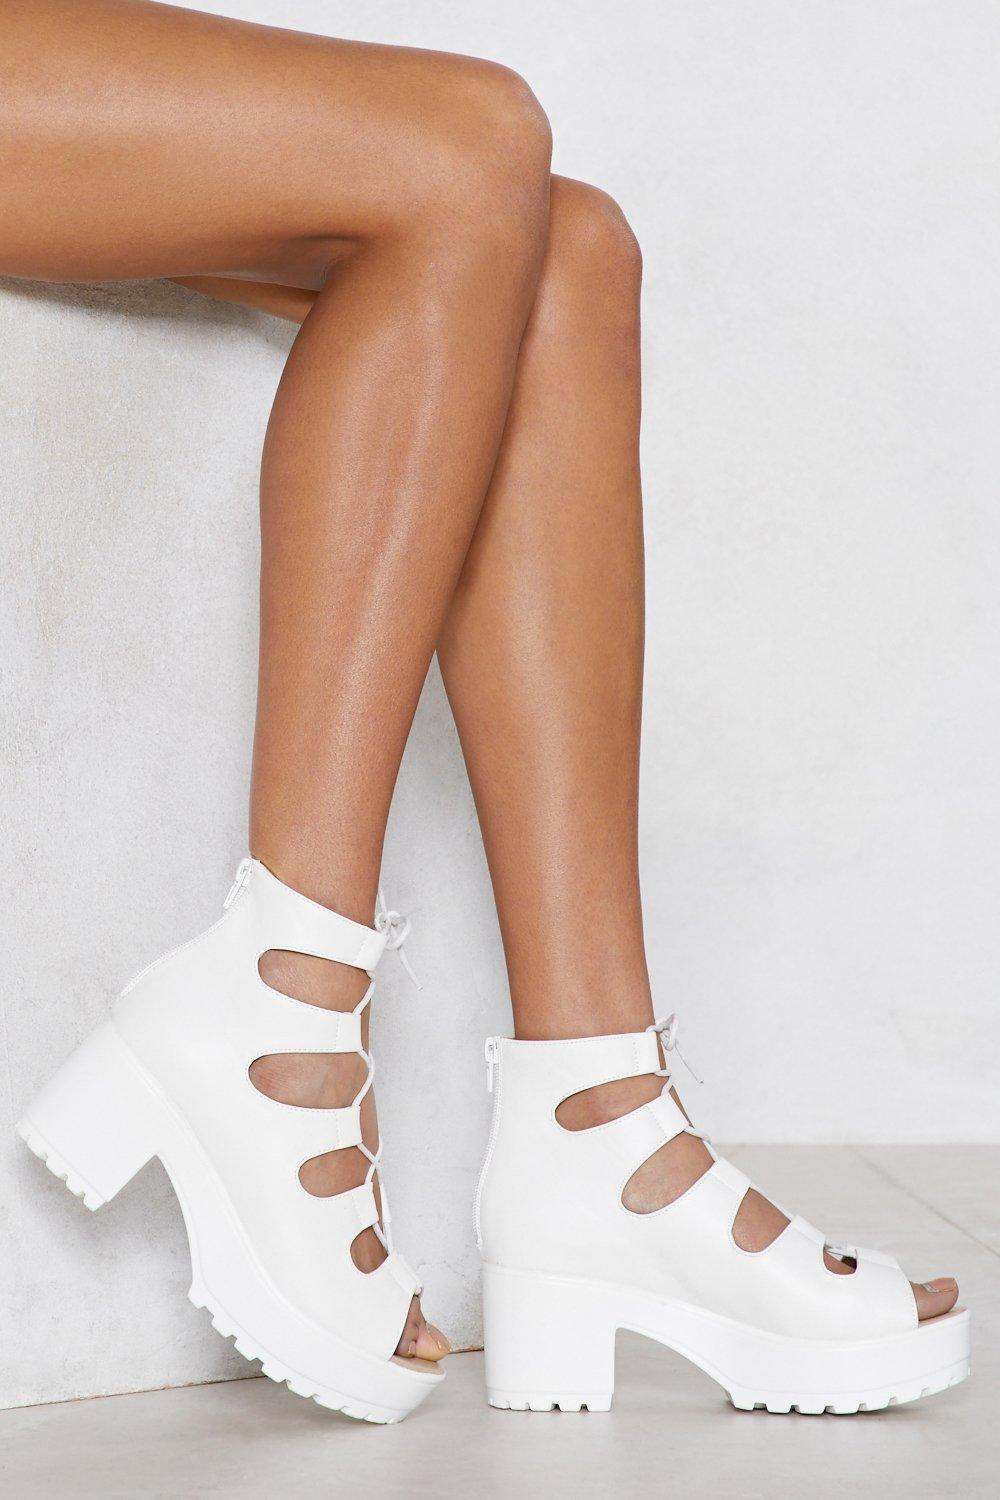 Nasty Gal. Women's White It's Up To You Heel Sandal